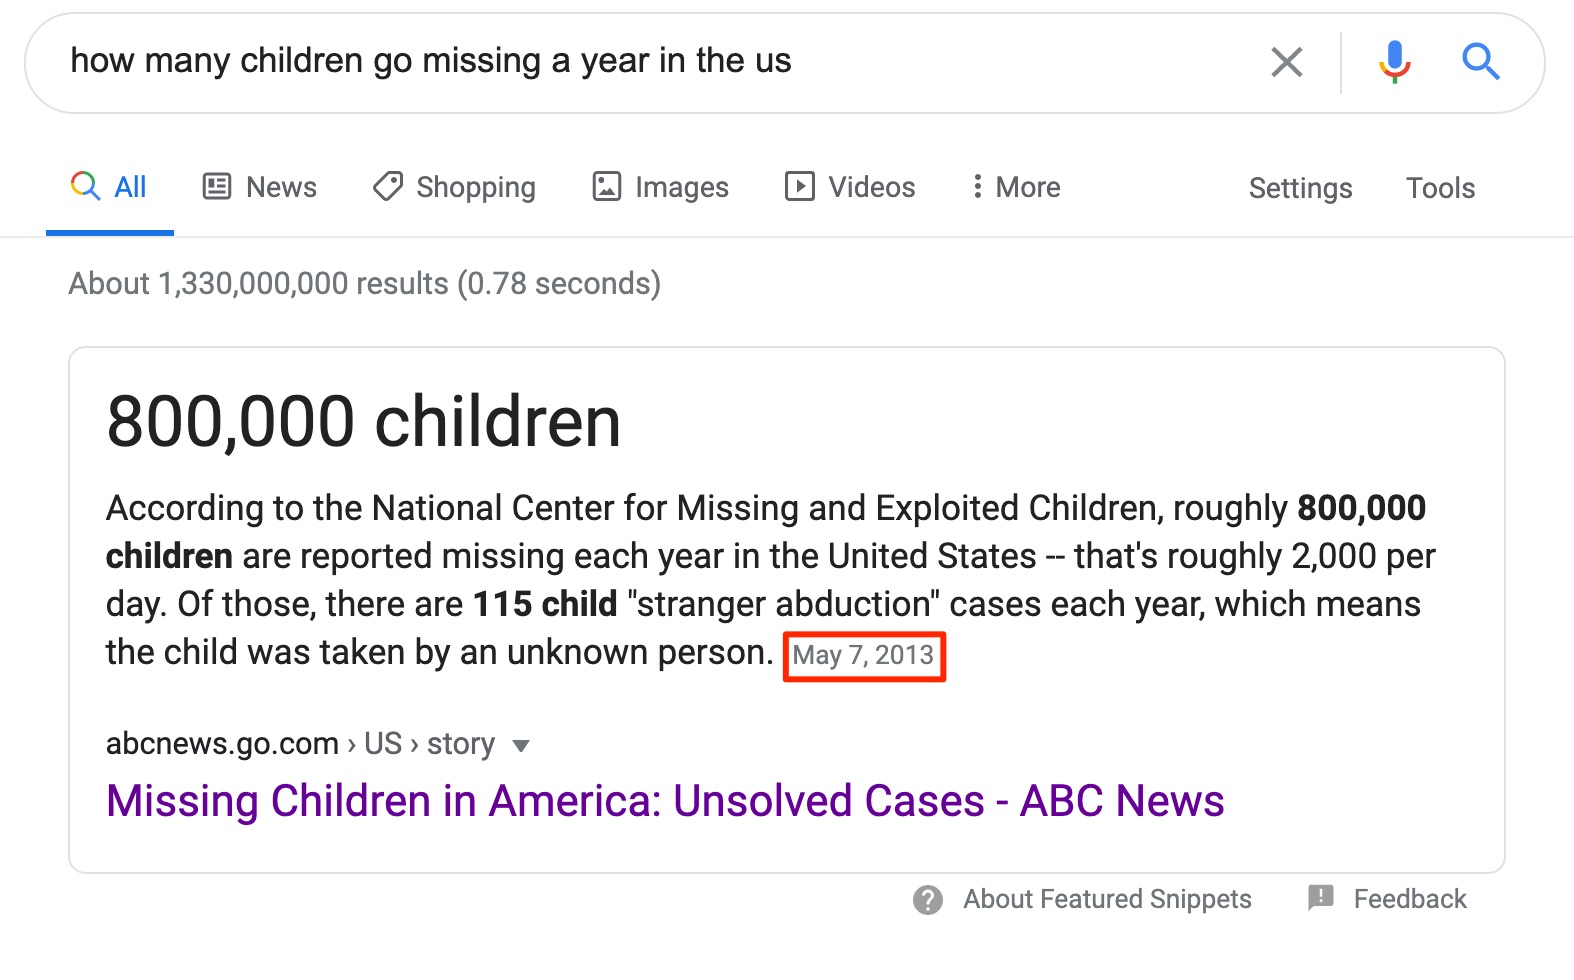 how_many_children_go_missing_a_year_in_the_us_-_800000 2020